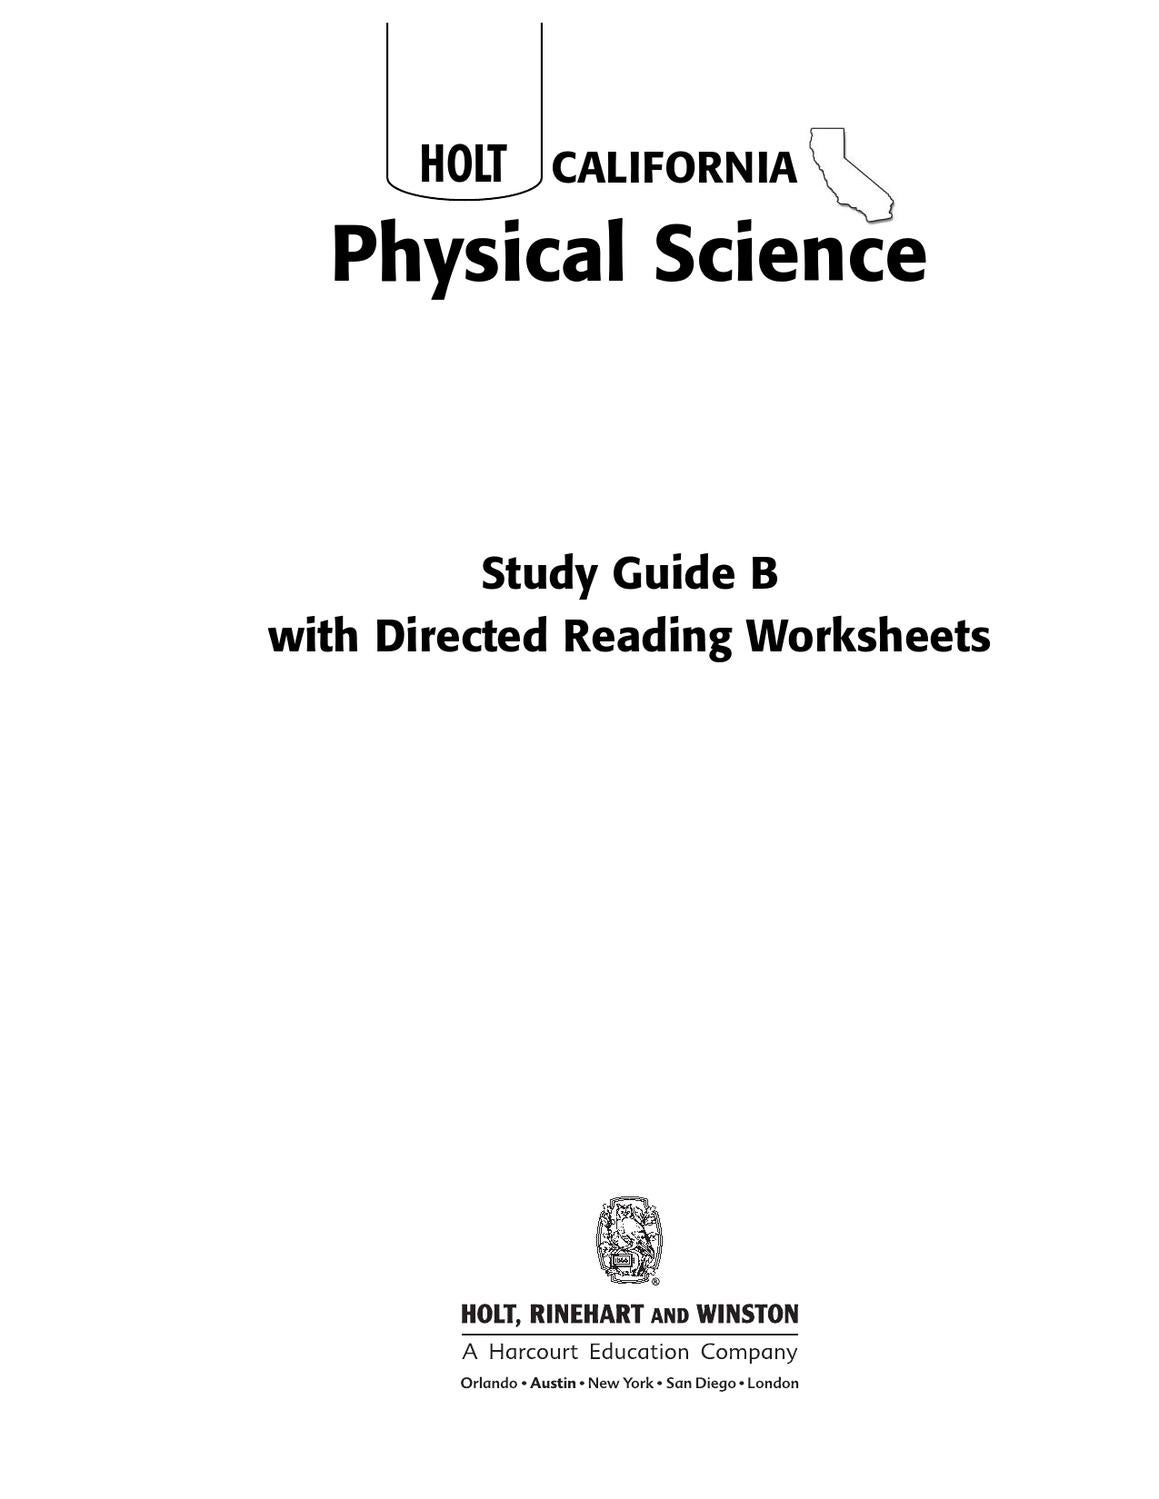 Worksheets Holt Physical Science Worksheets 8th grade science worksheets by lance green issuu